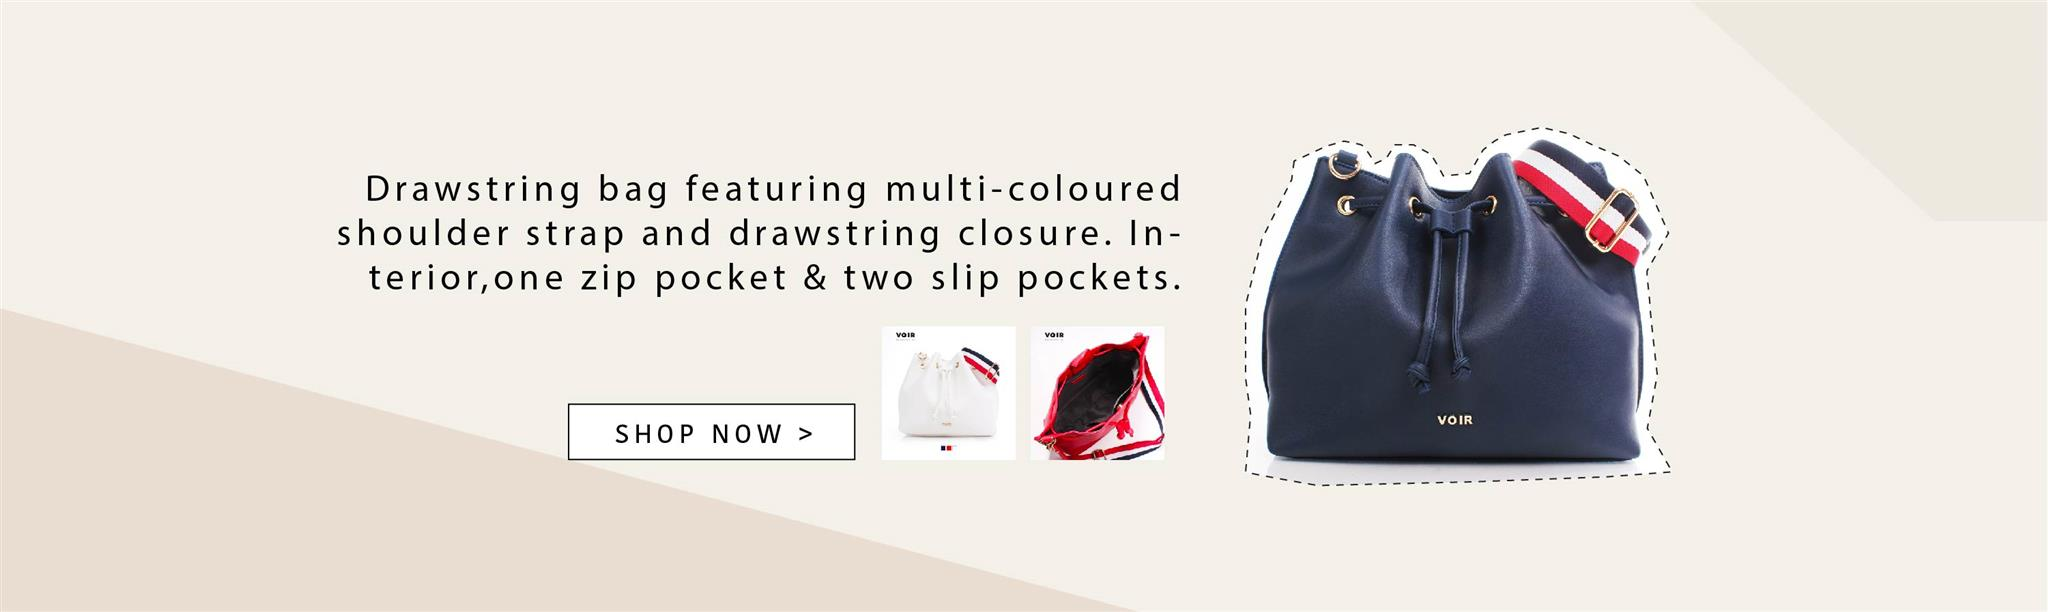 https://www.voirgallery.com/products/voir-drawstring-bag-featuring-multi-coloured-shoulder-strap-vn101110-u081804